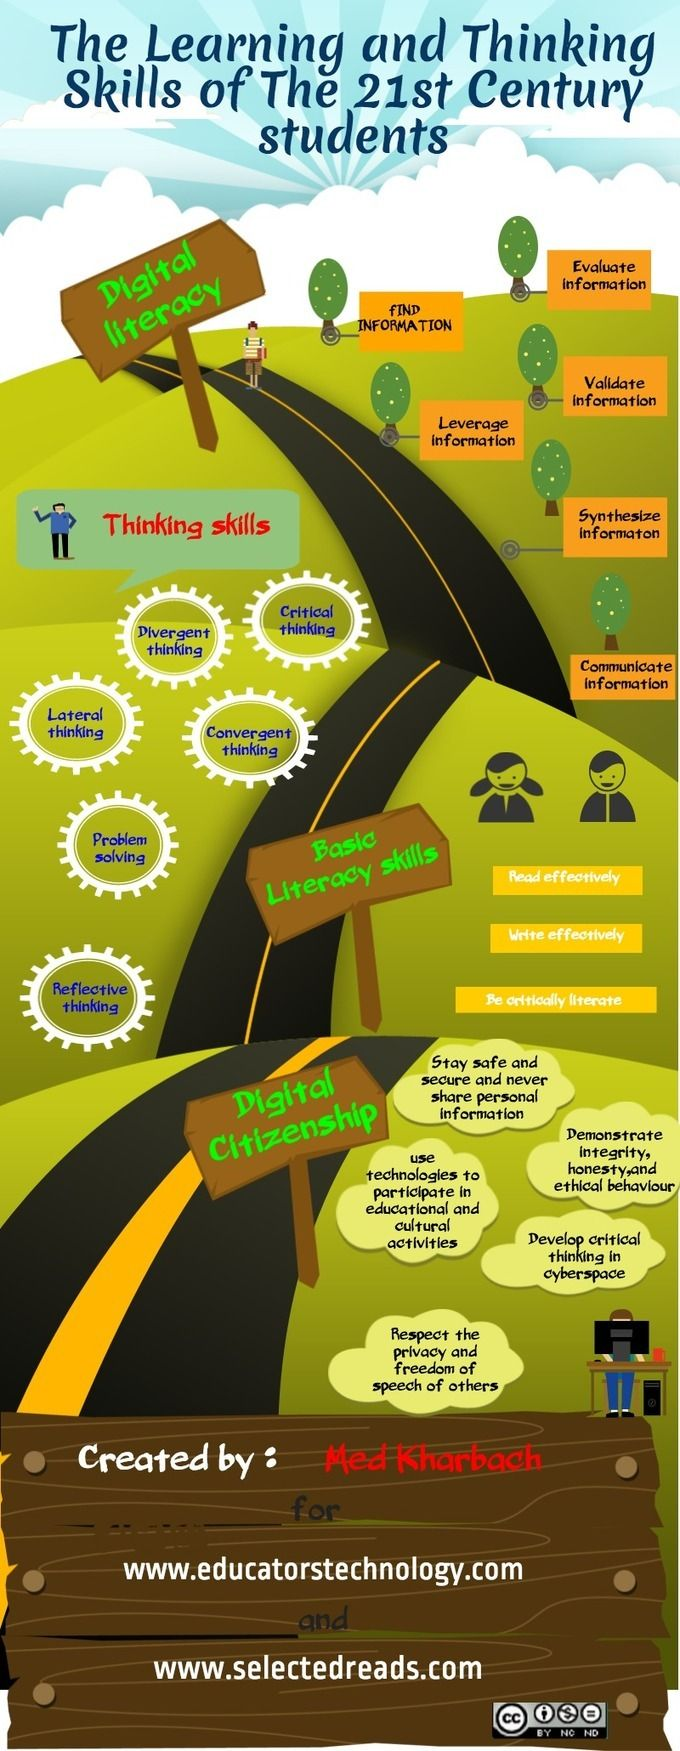 A Free Poster on The Learning and Thinking Skills of The